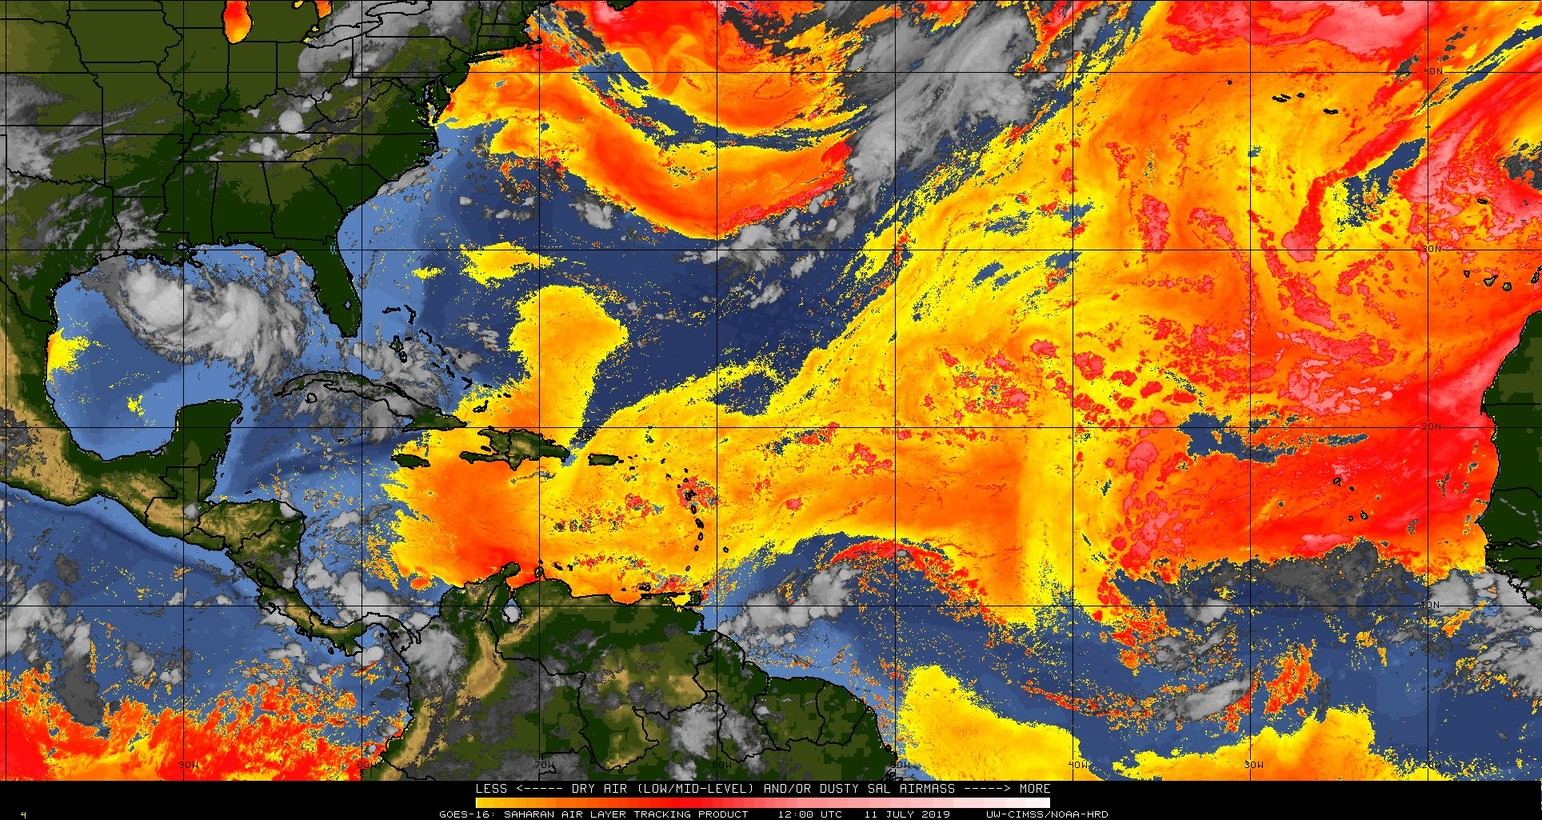 Dry (Saharan Desert) air dominates the scene in the tropical Atlantic and this will continue to be an inhibiting factor for tropical storm development in the eastern Atlantic; courtesy CIMSS/Wisconsin, NOAA